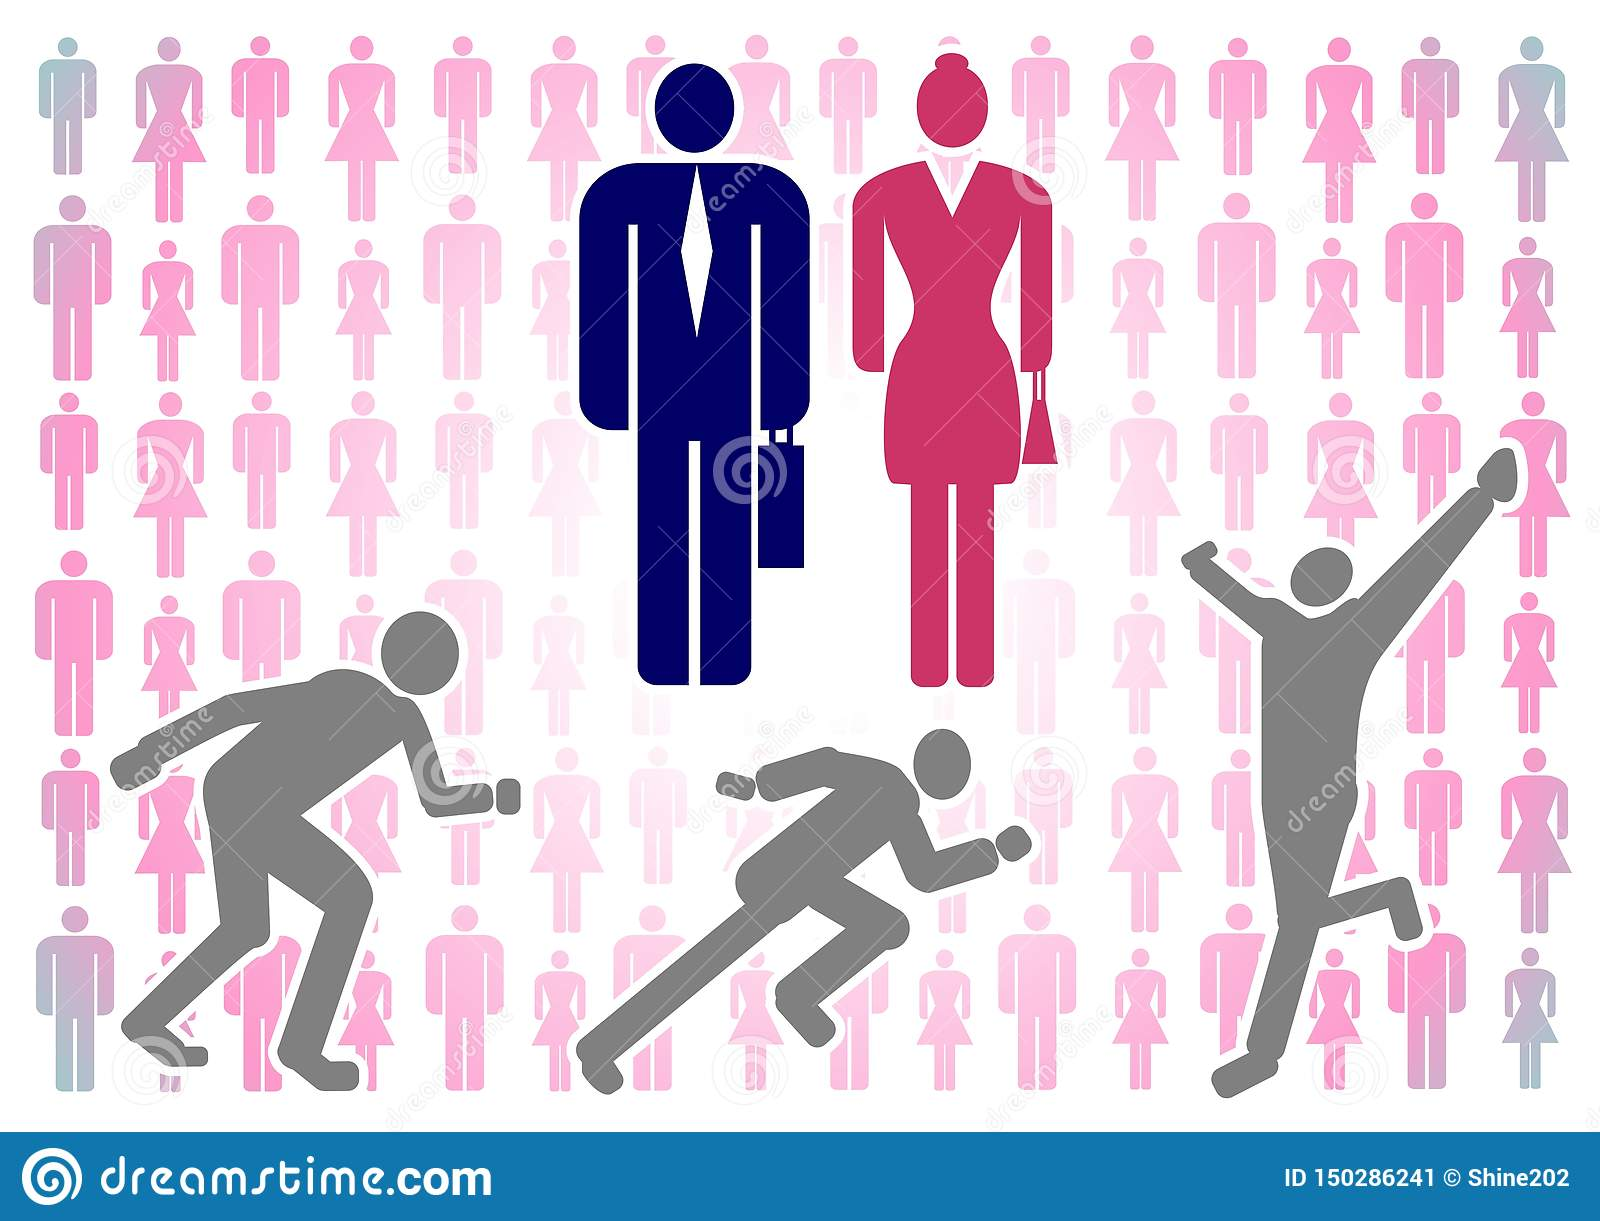 Vector illustration with colorful silhouettes of men and women on a white background, as well as the figure of a running man